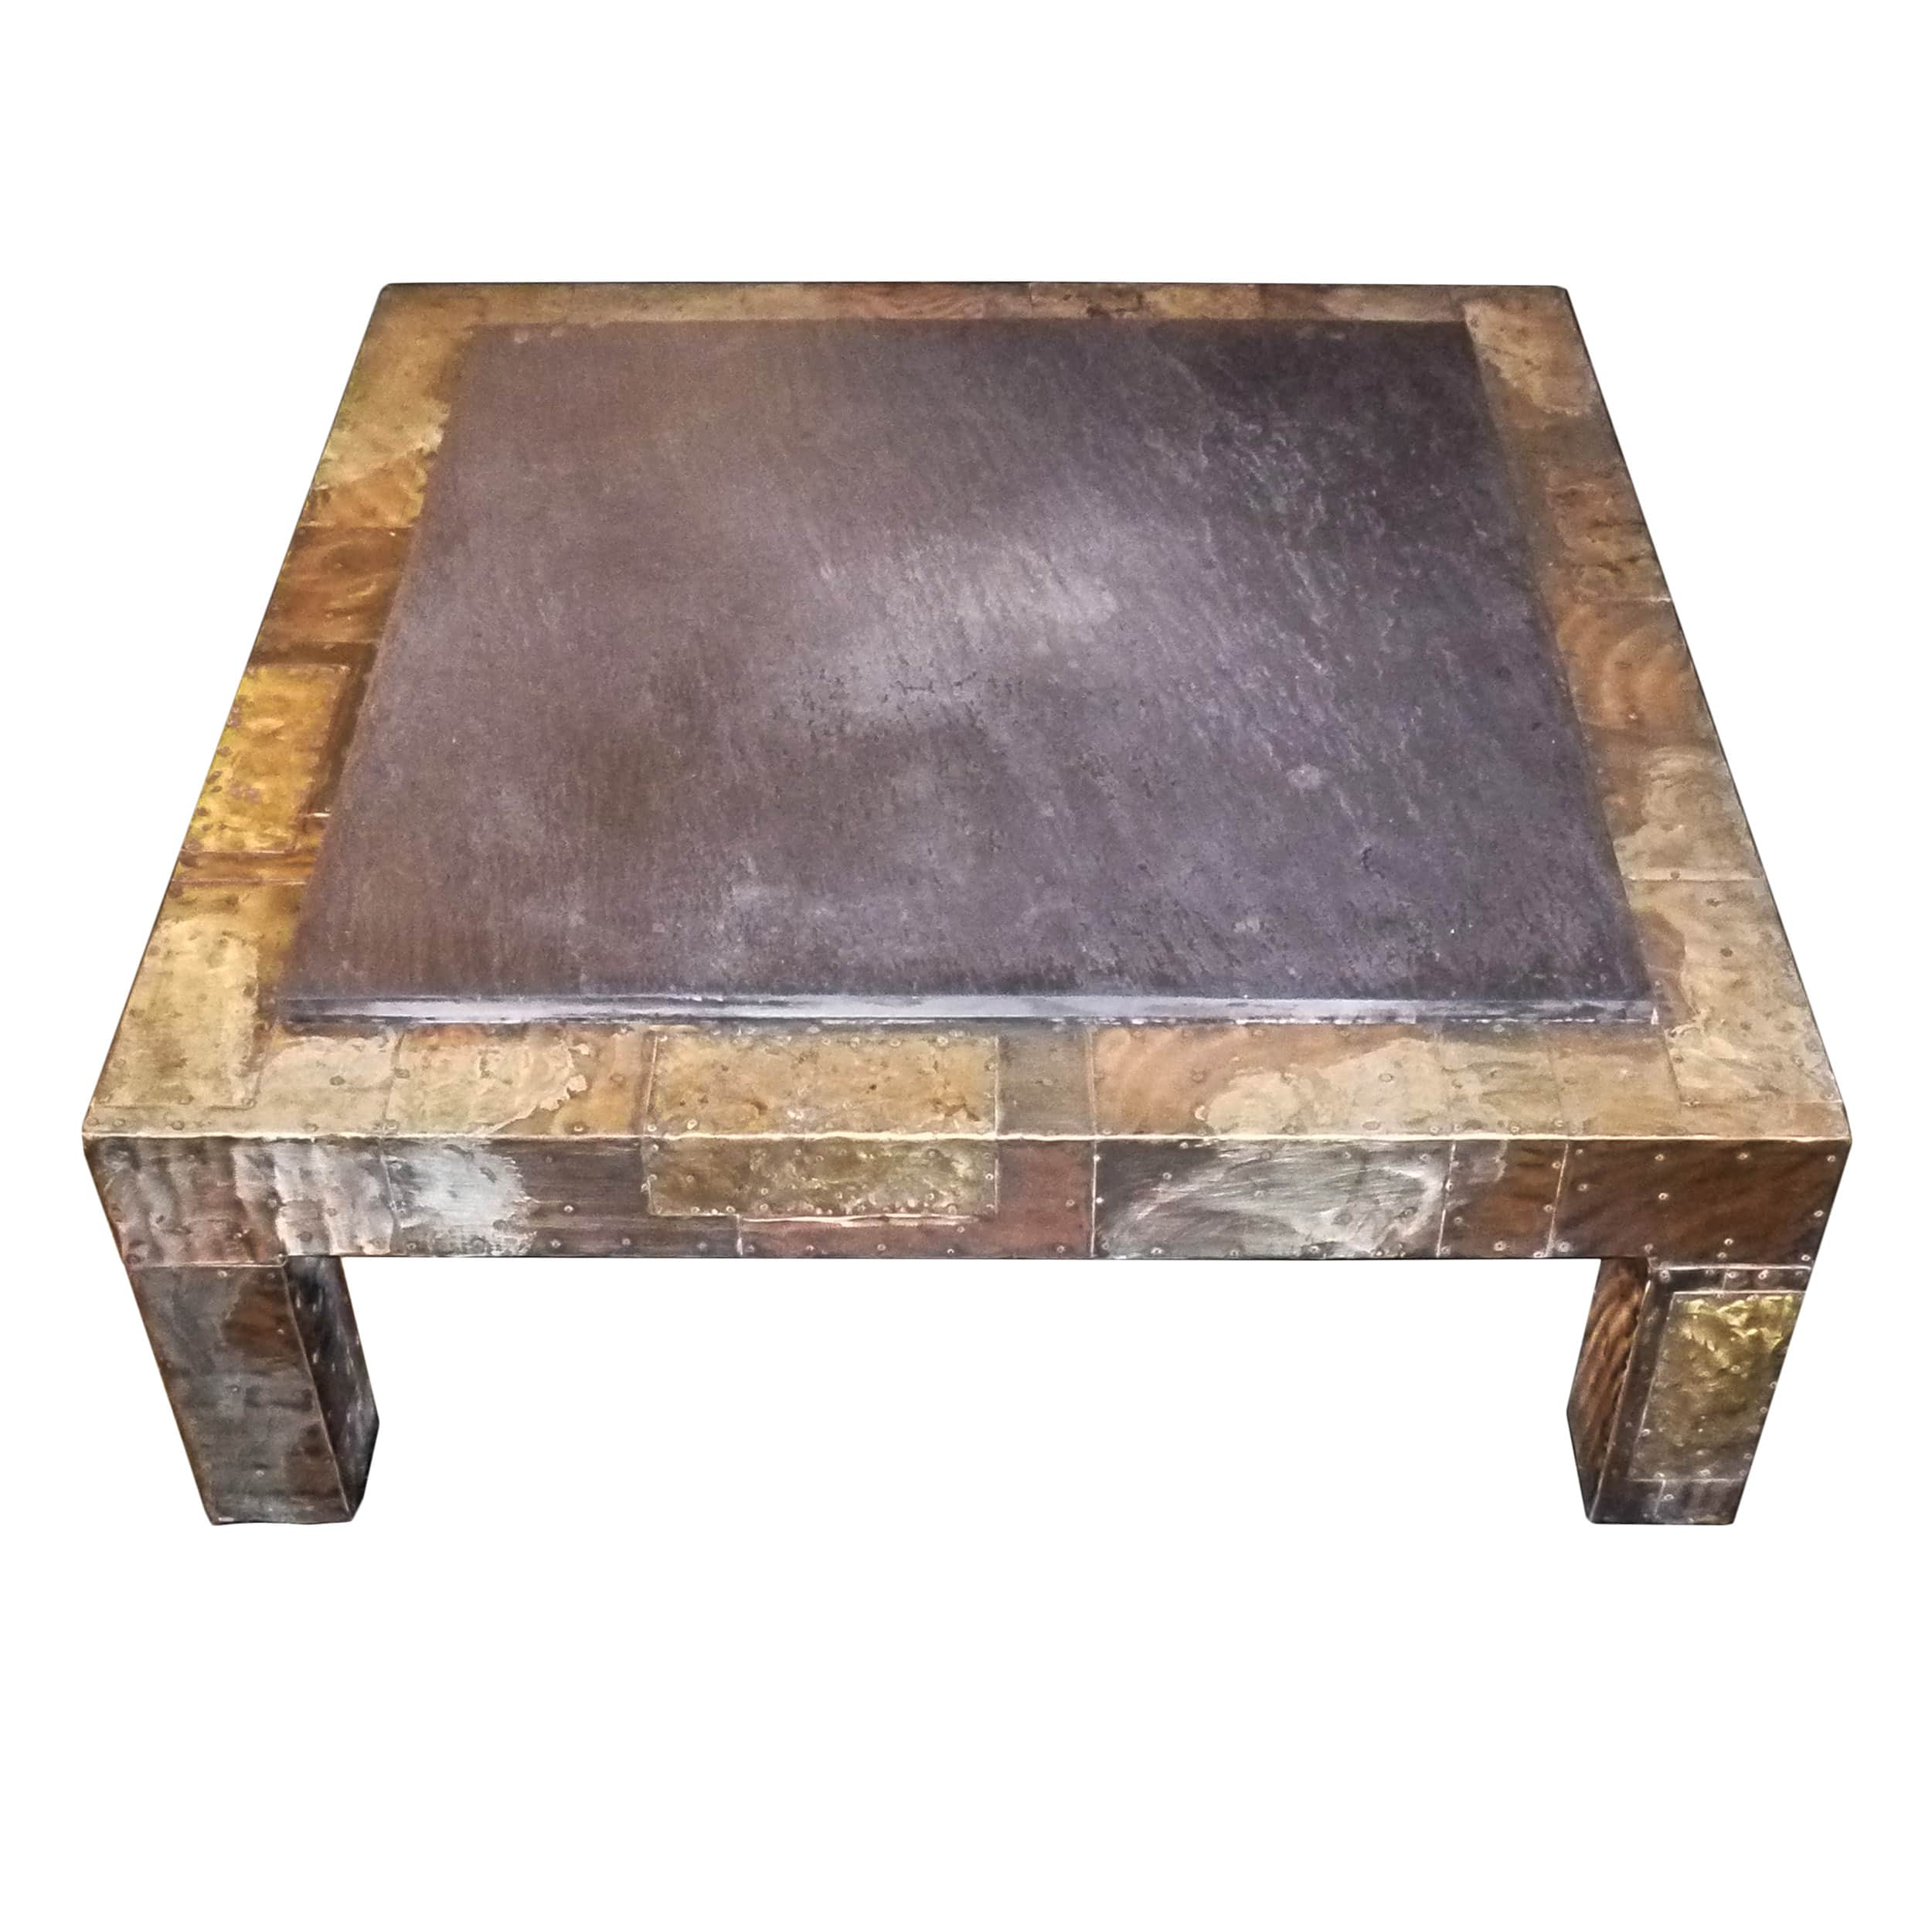 Paul evans patchwork coffee table with slate top usa circa 1970s todd merrill studio Slate top coffee tables